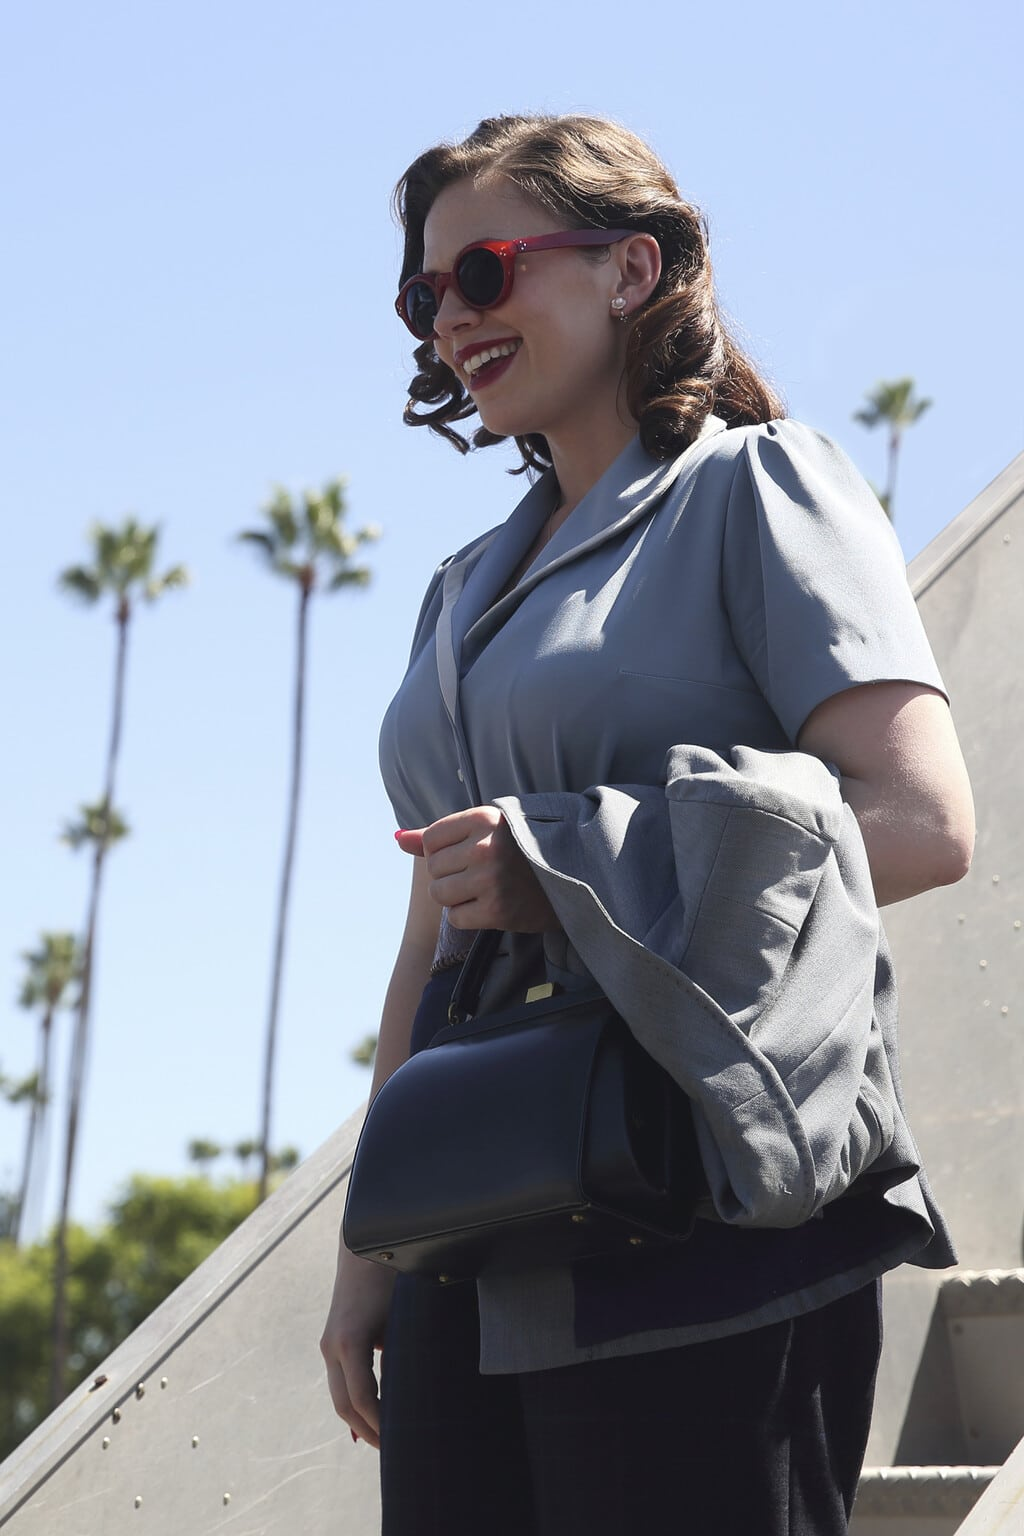 MARVEL'S AGENT CARTER (ABC/Patrick Wymore) HAYLEY ATWELL